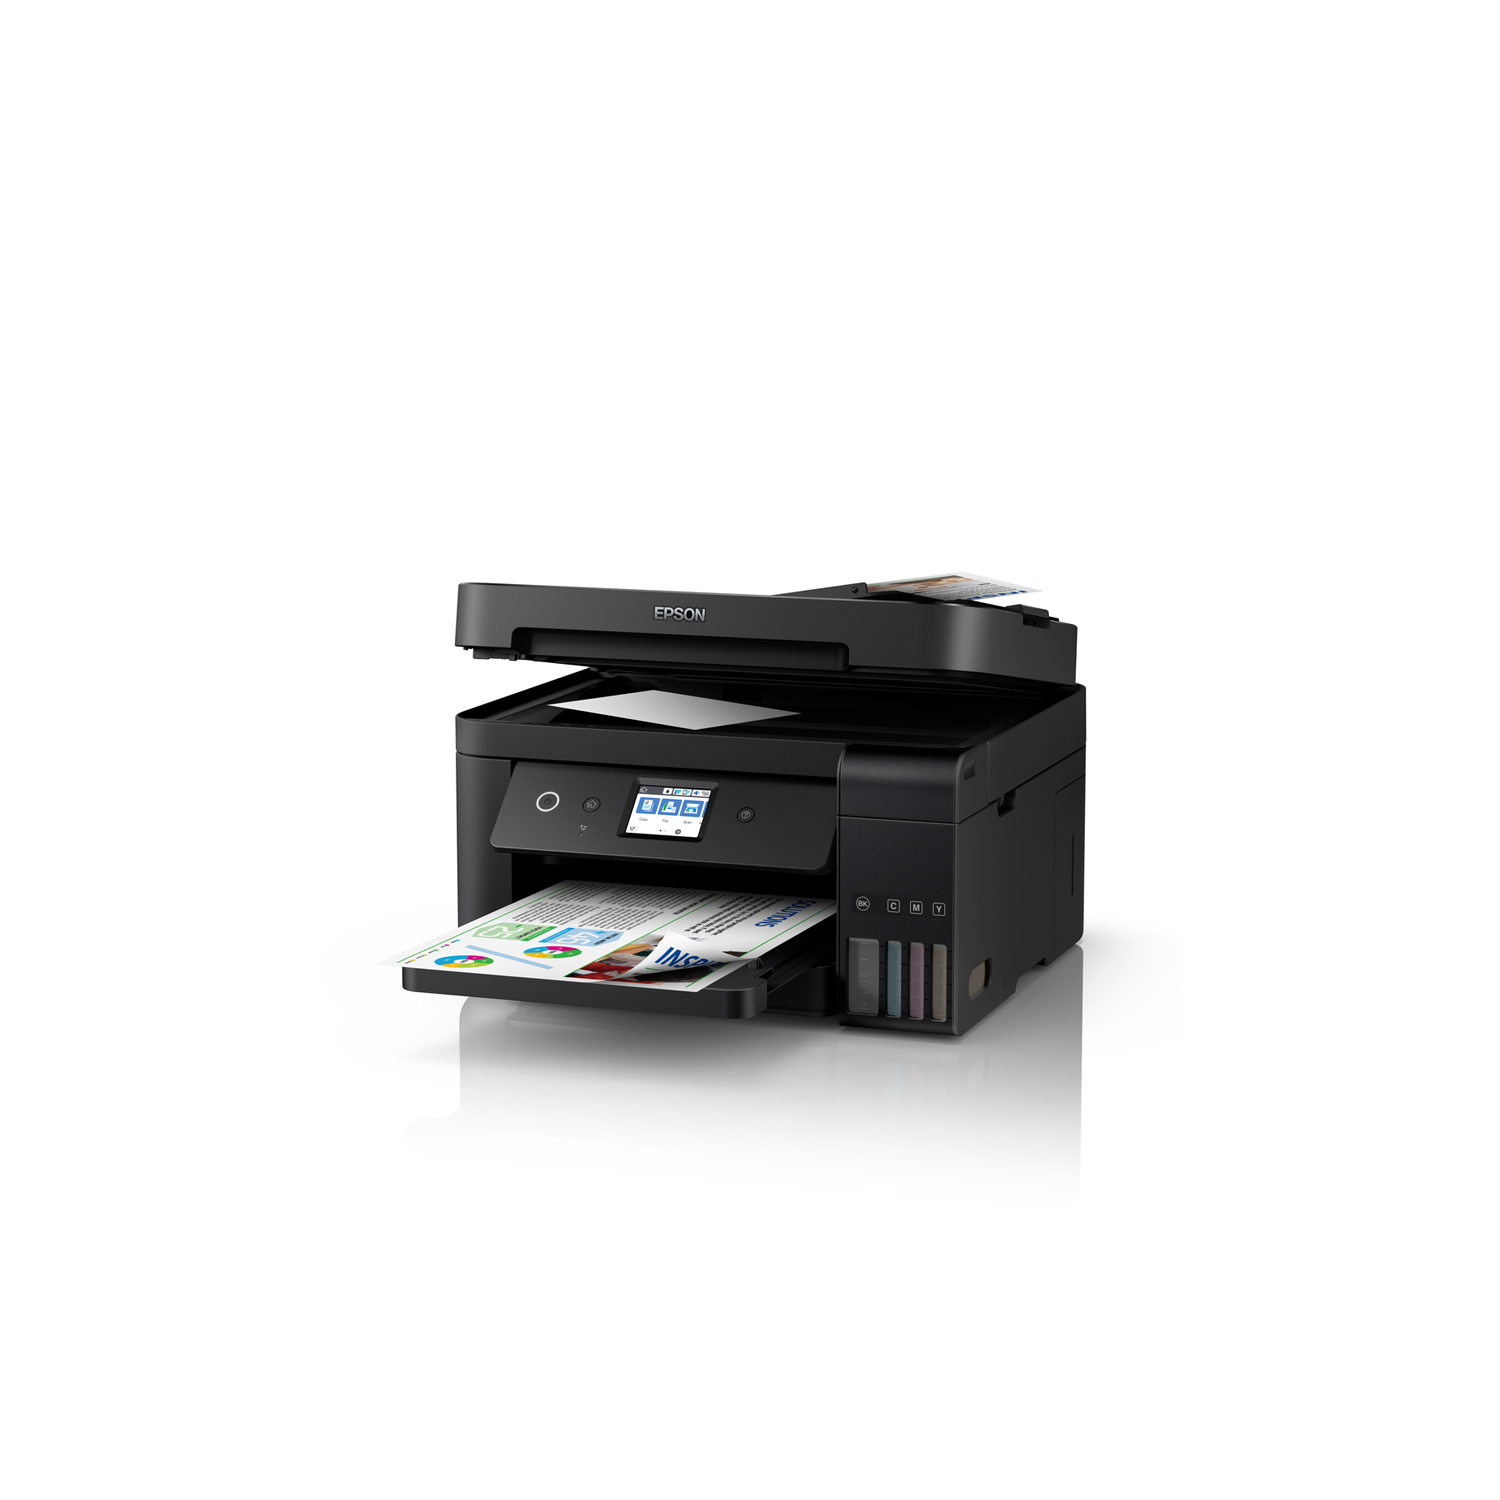 Epson L6190 Wi-Fi Duplex All-in-One Printer